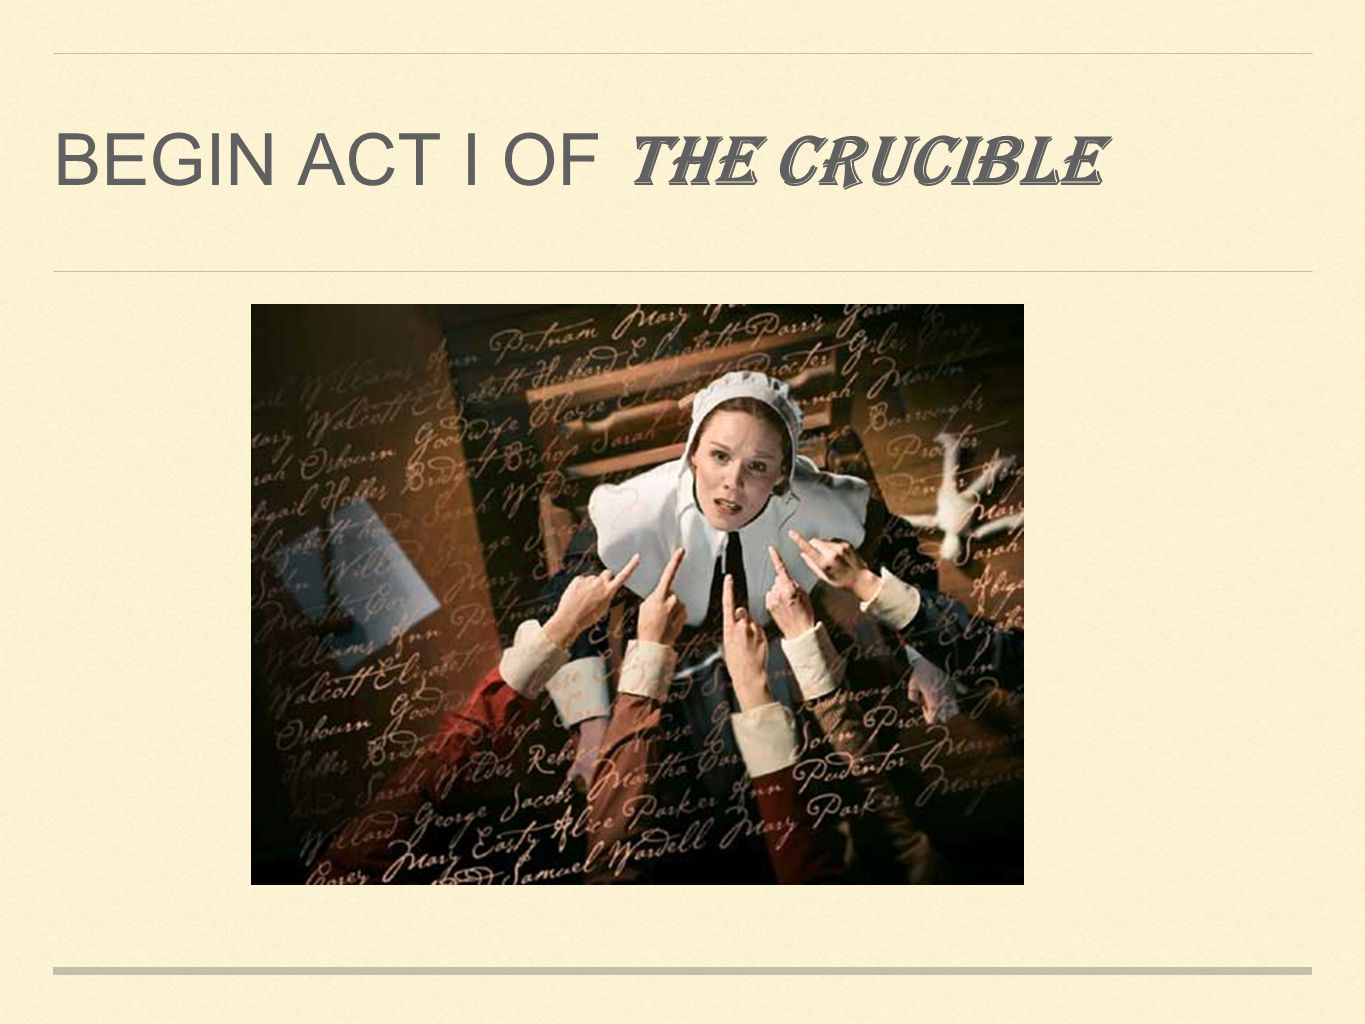 Begin Act I of the crucible